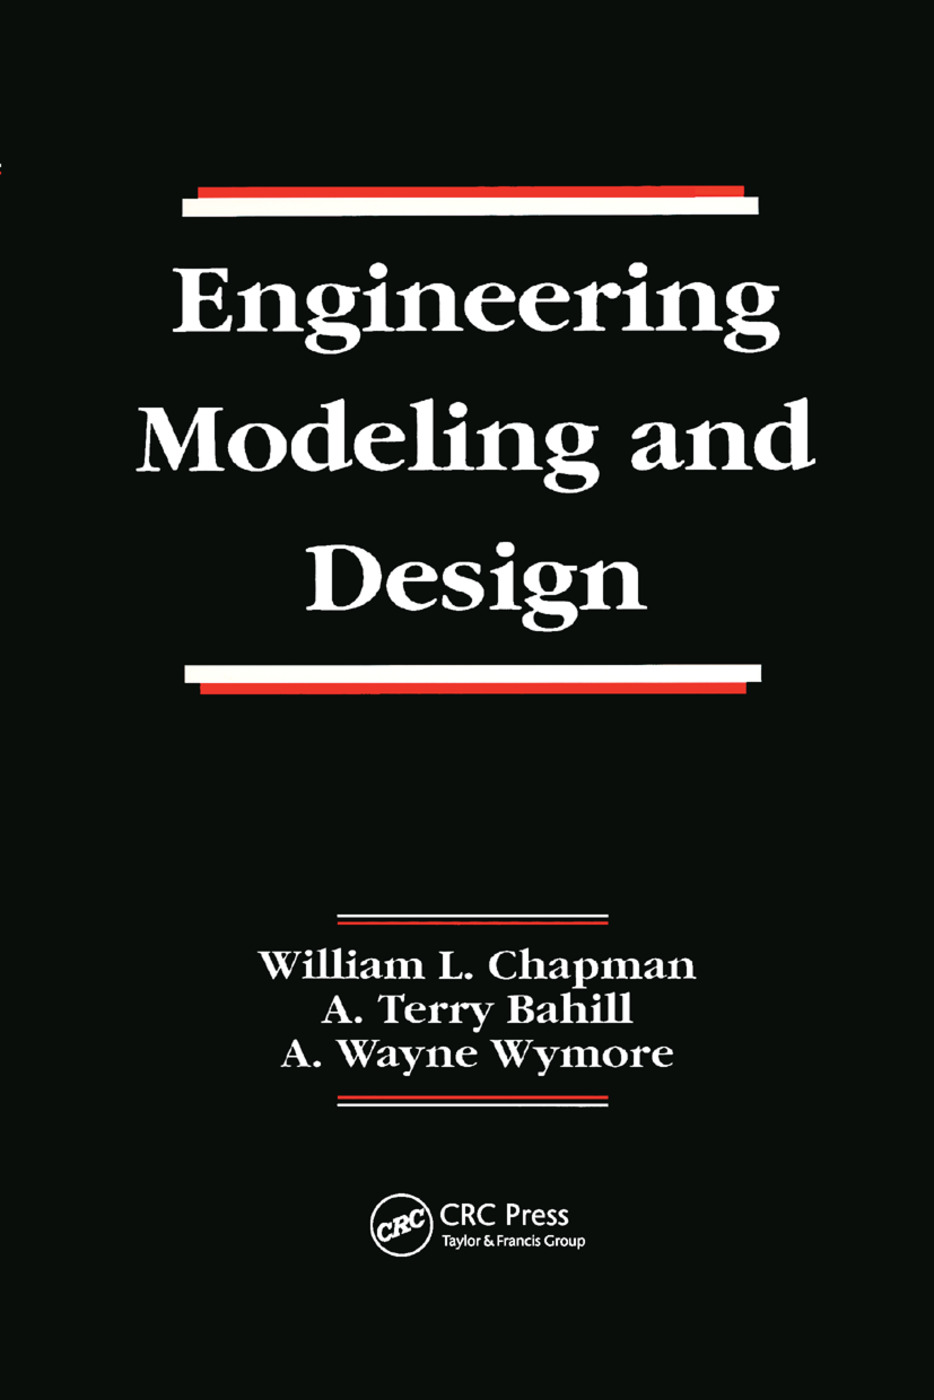 Engineering Modeling and Design: 1st Edition (Paperback) book cover